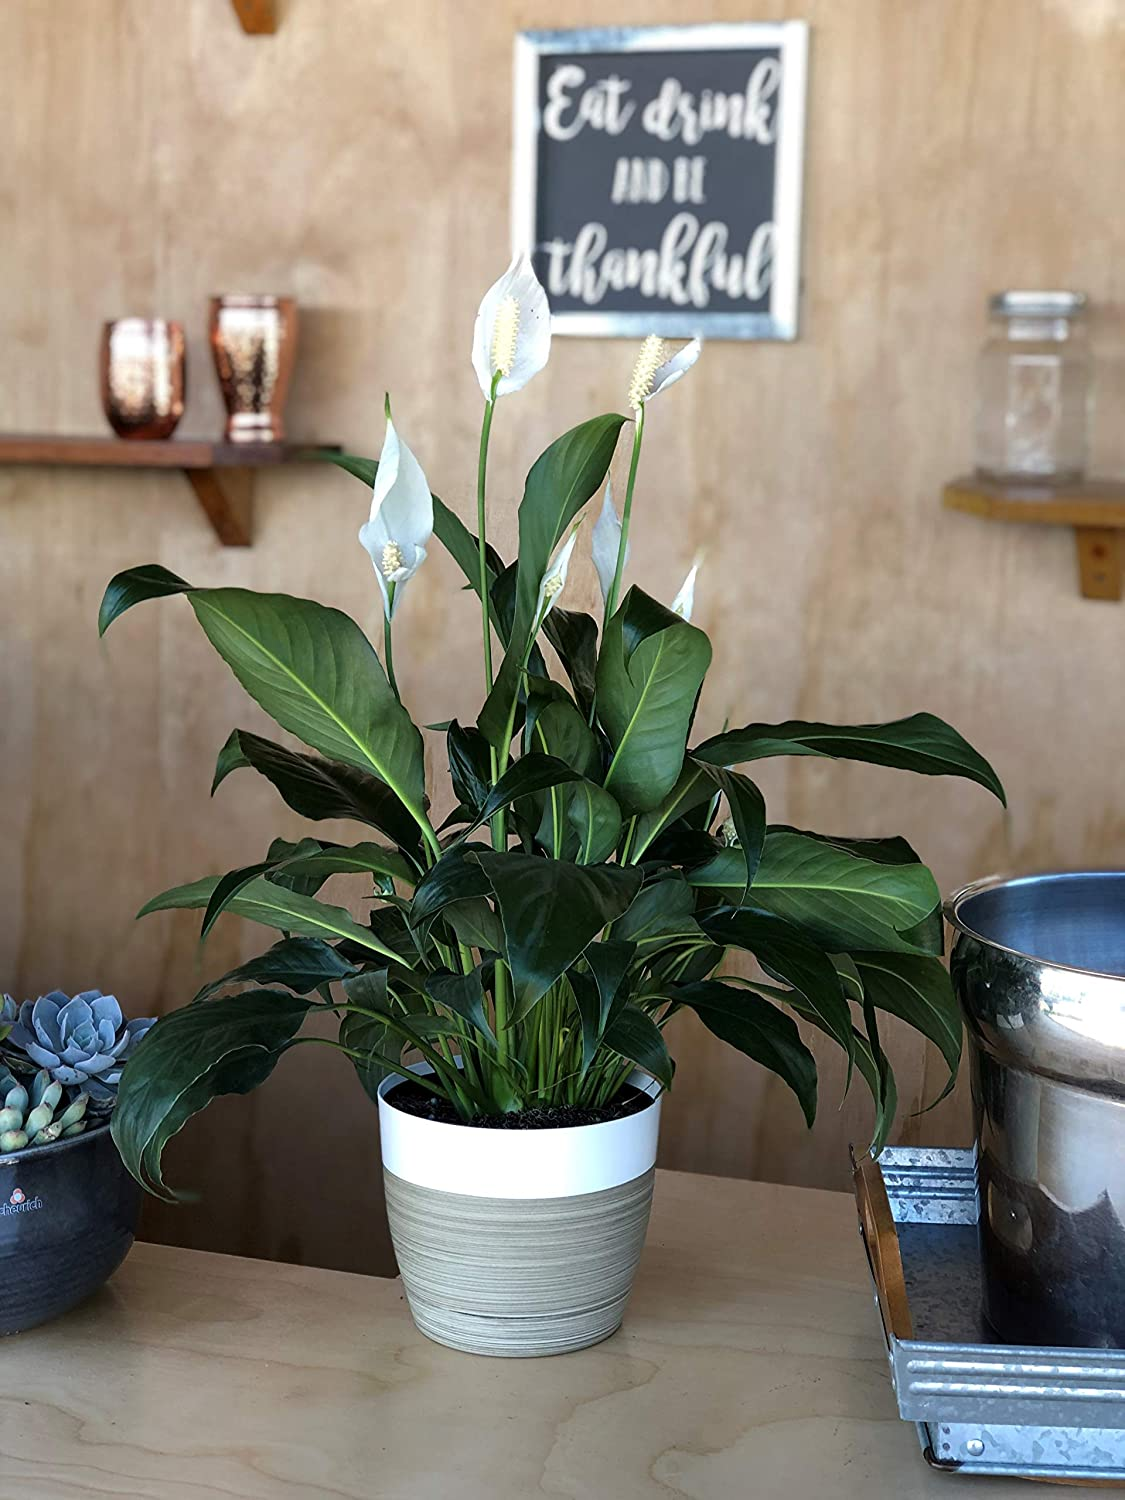 peace lily bloom on desk